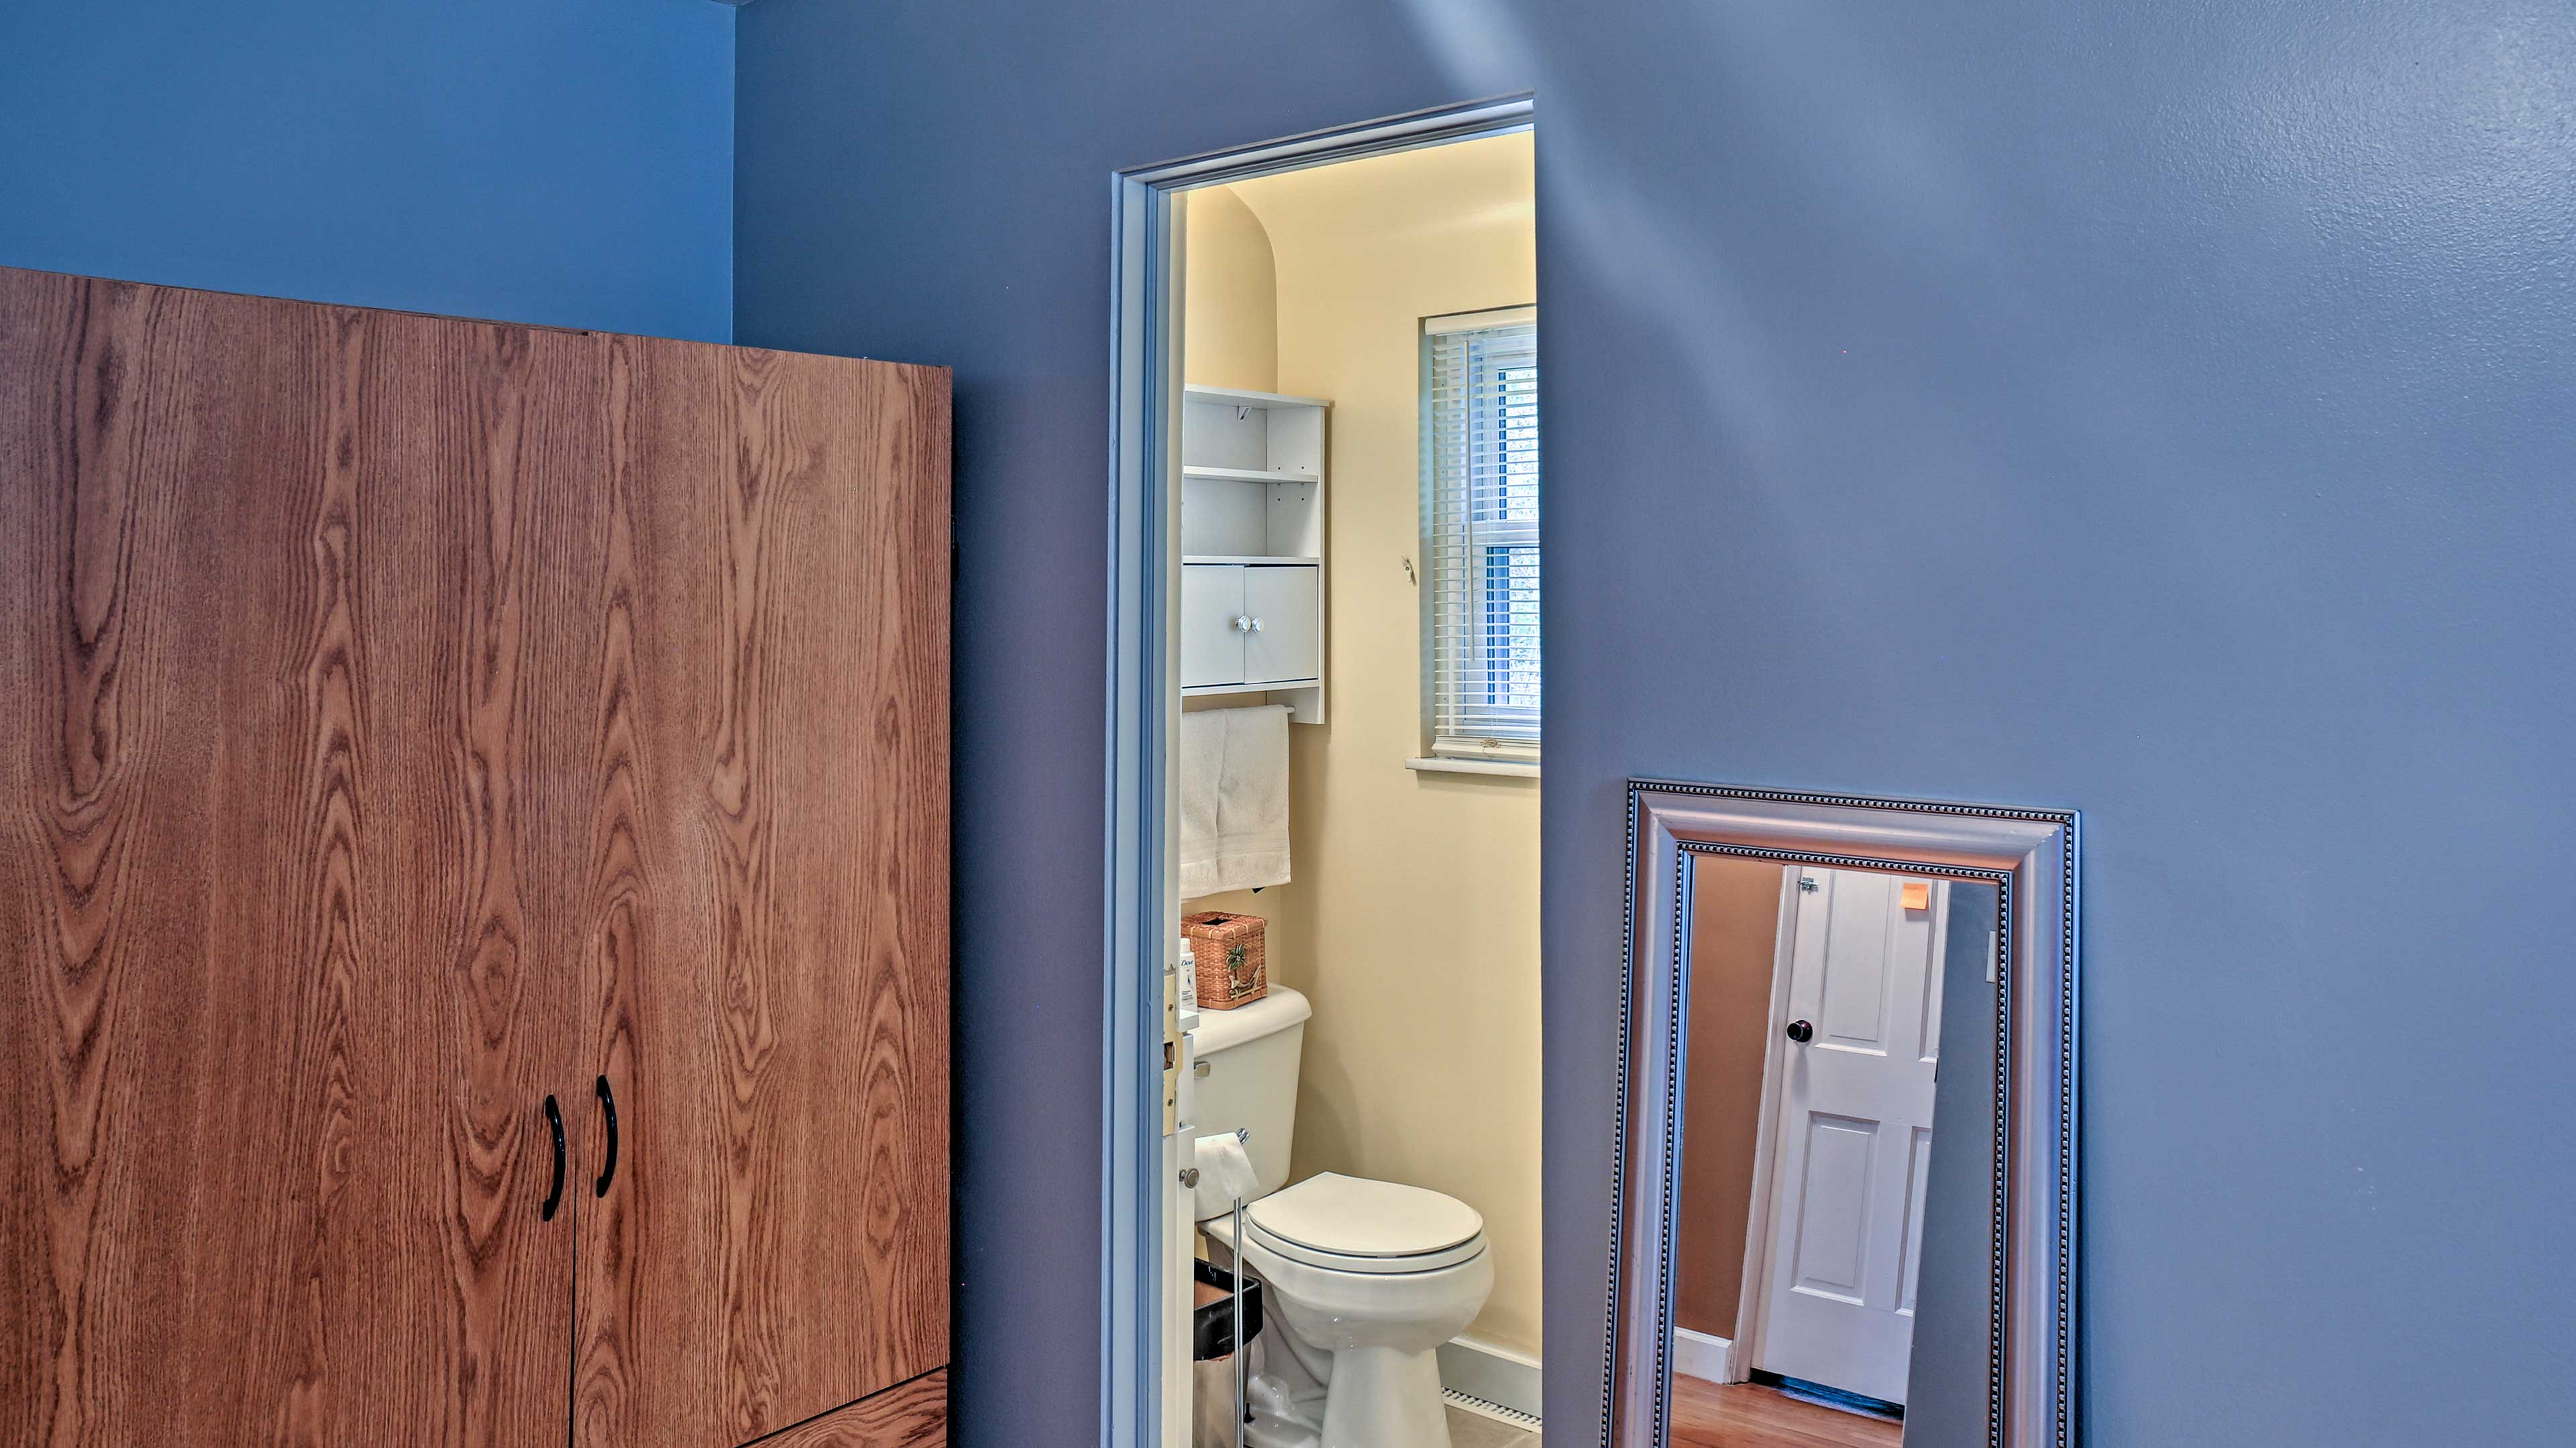 The third full bathroom has a stand-up shower for additional space to get ready.